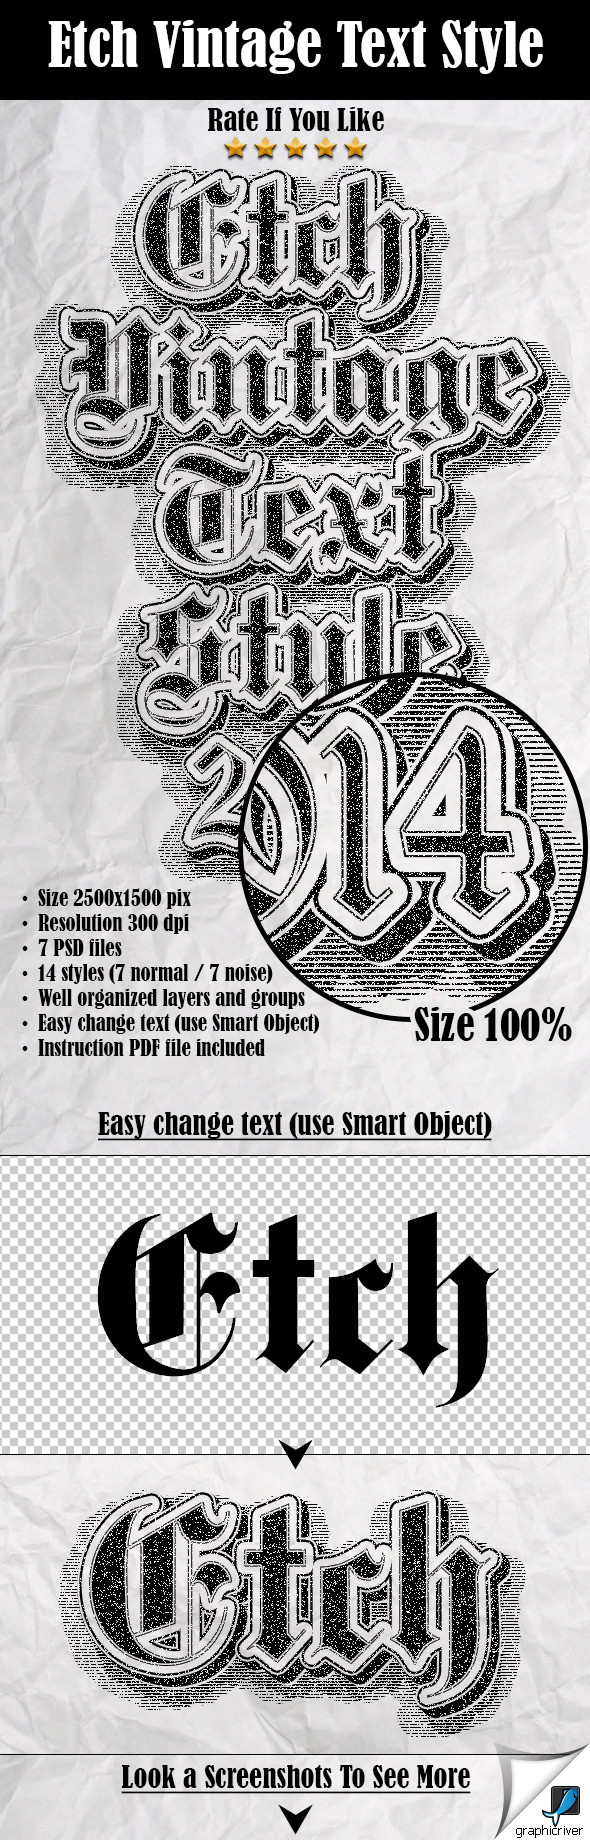 GraphicRiver Etch Vintage Text Style 9804098